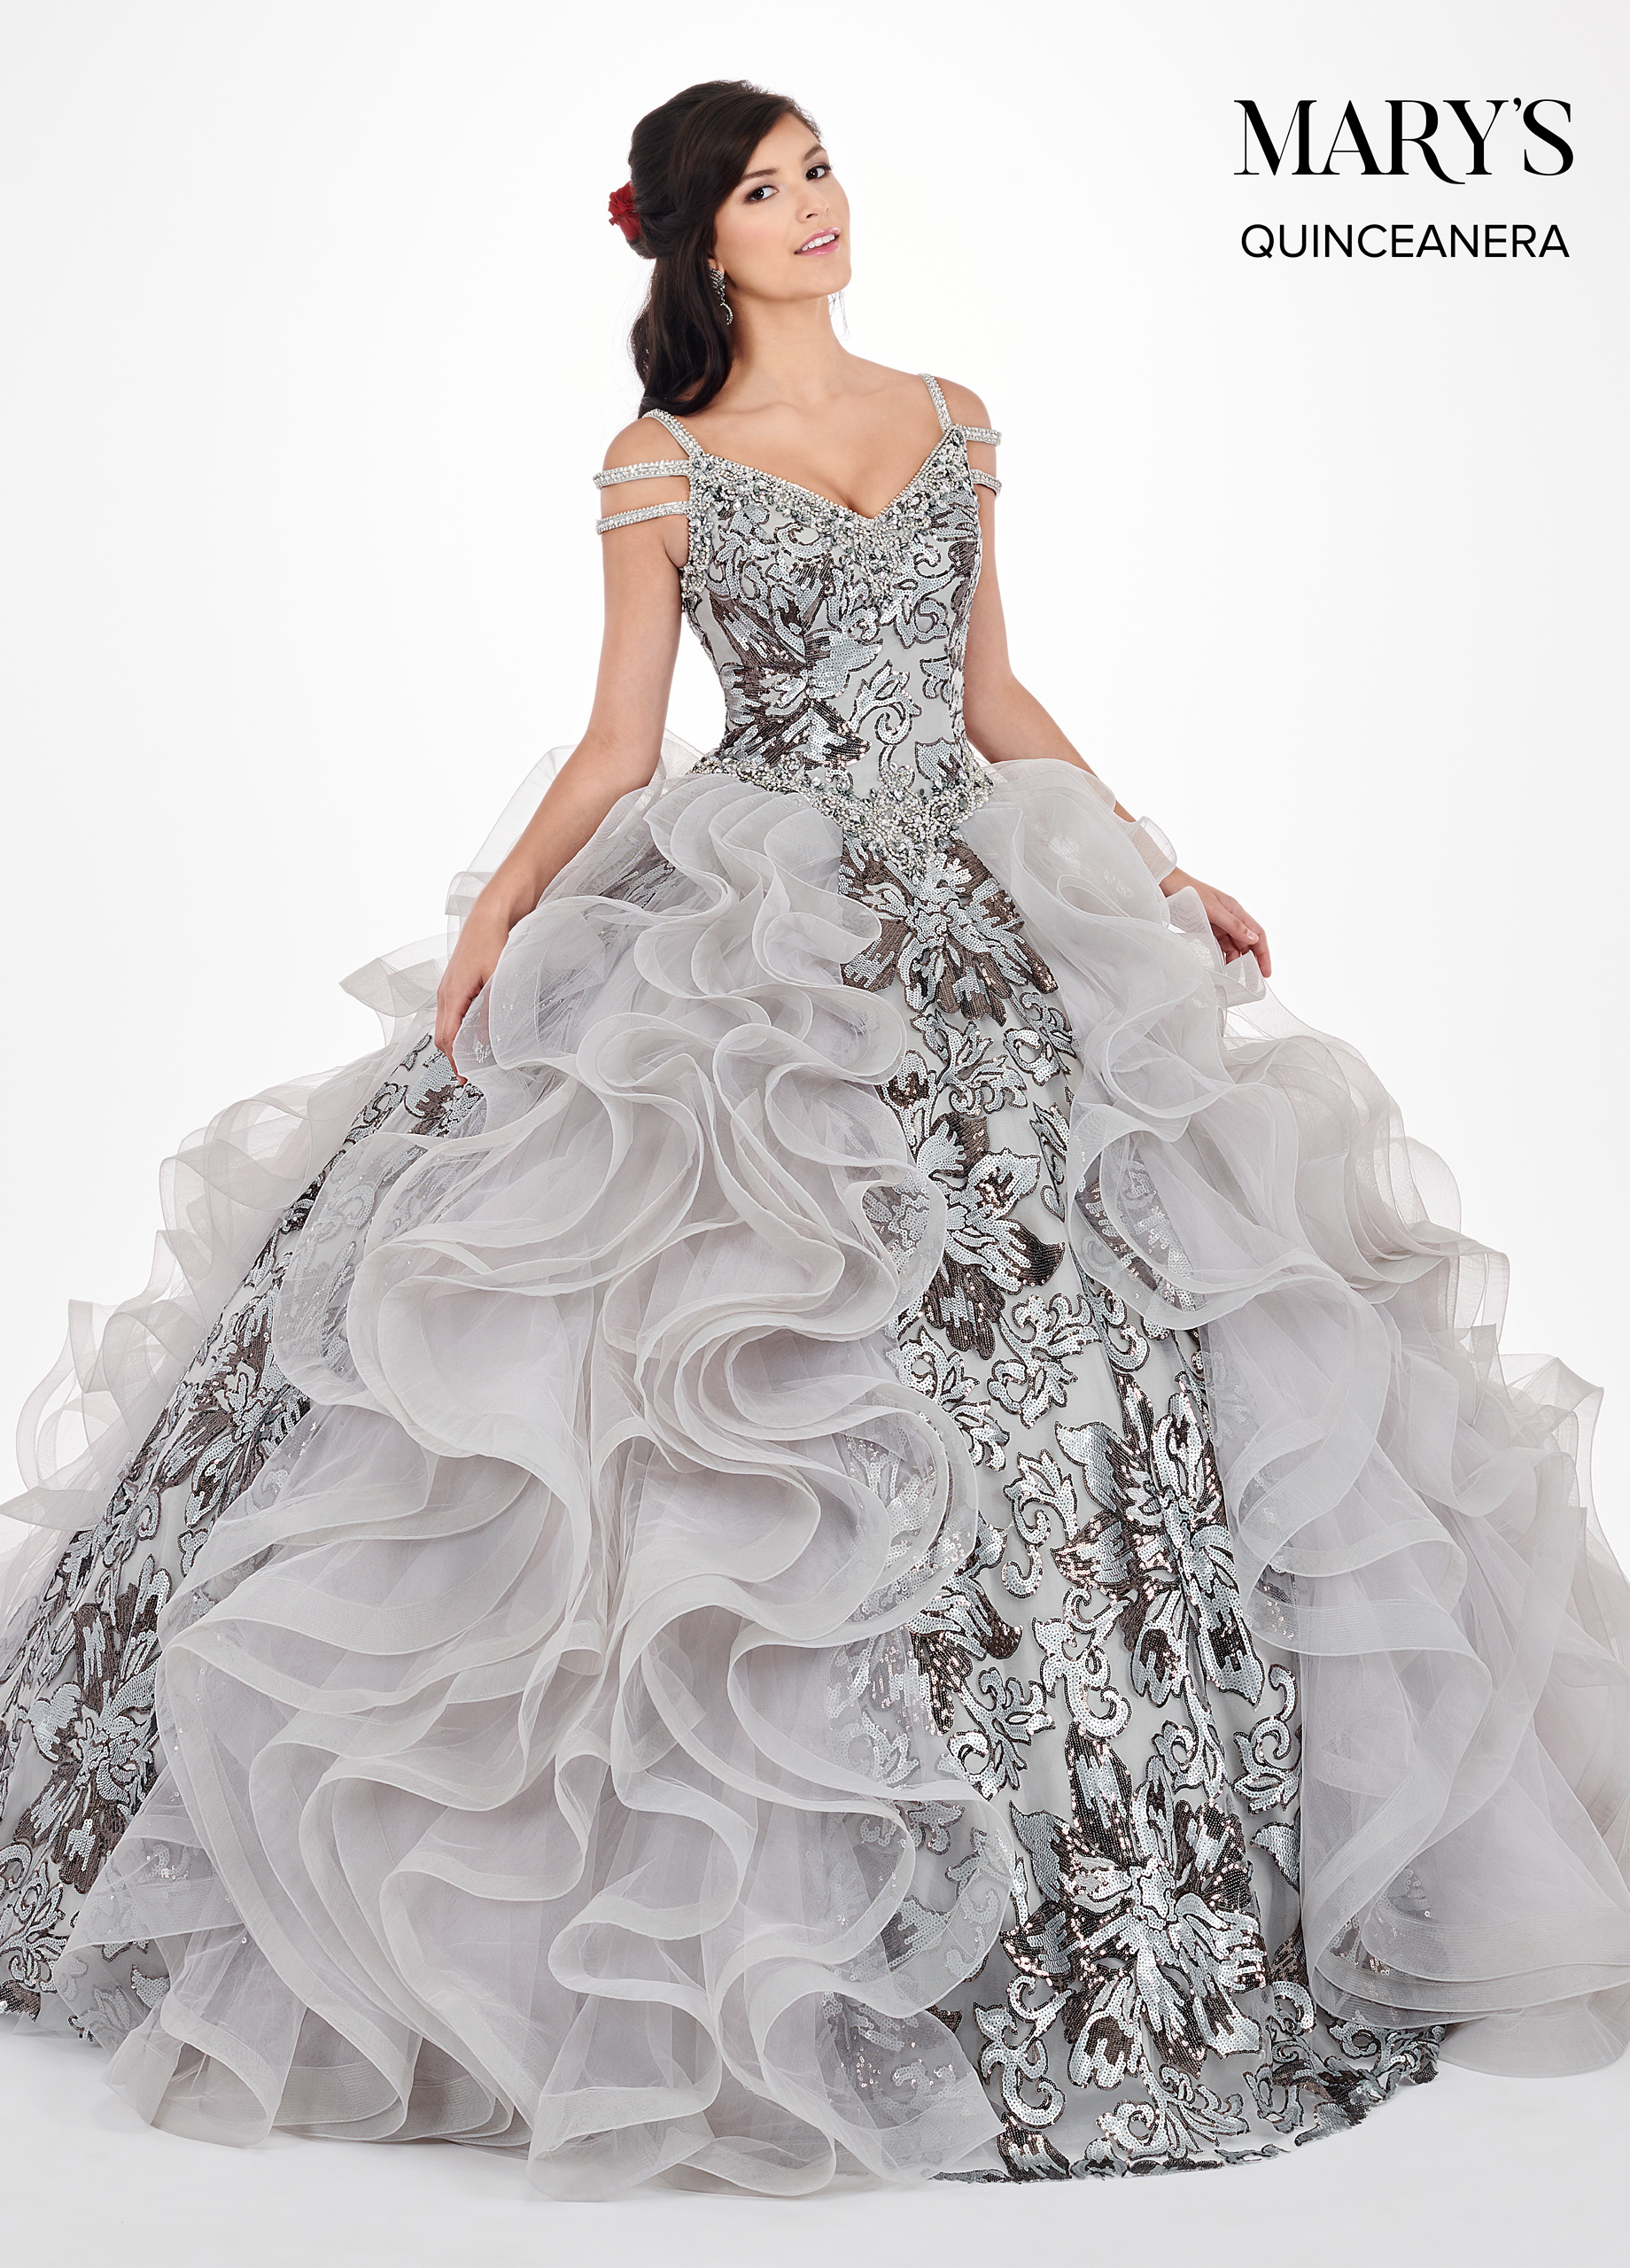 Marys Quinceanera Dresses | Mary's Quinceanera | Style - MQ2065